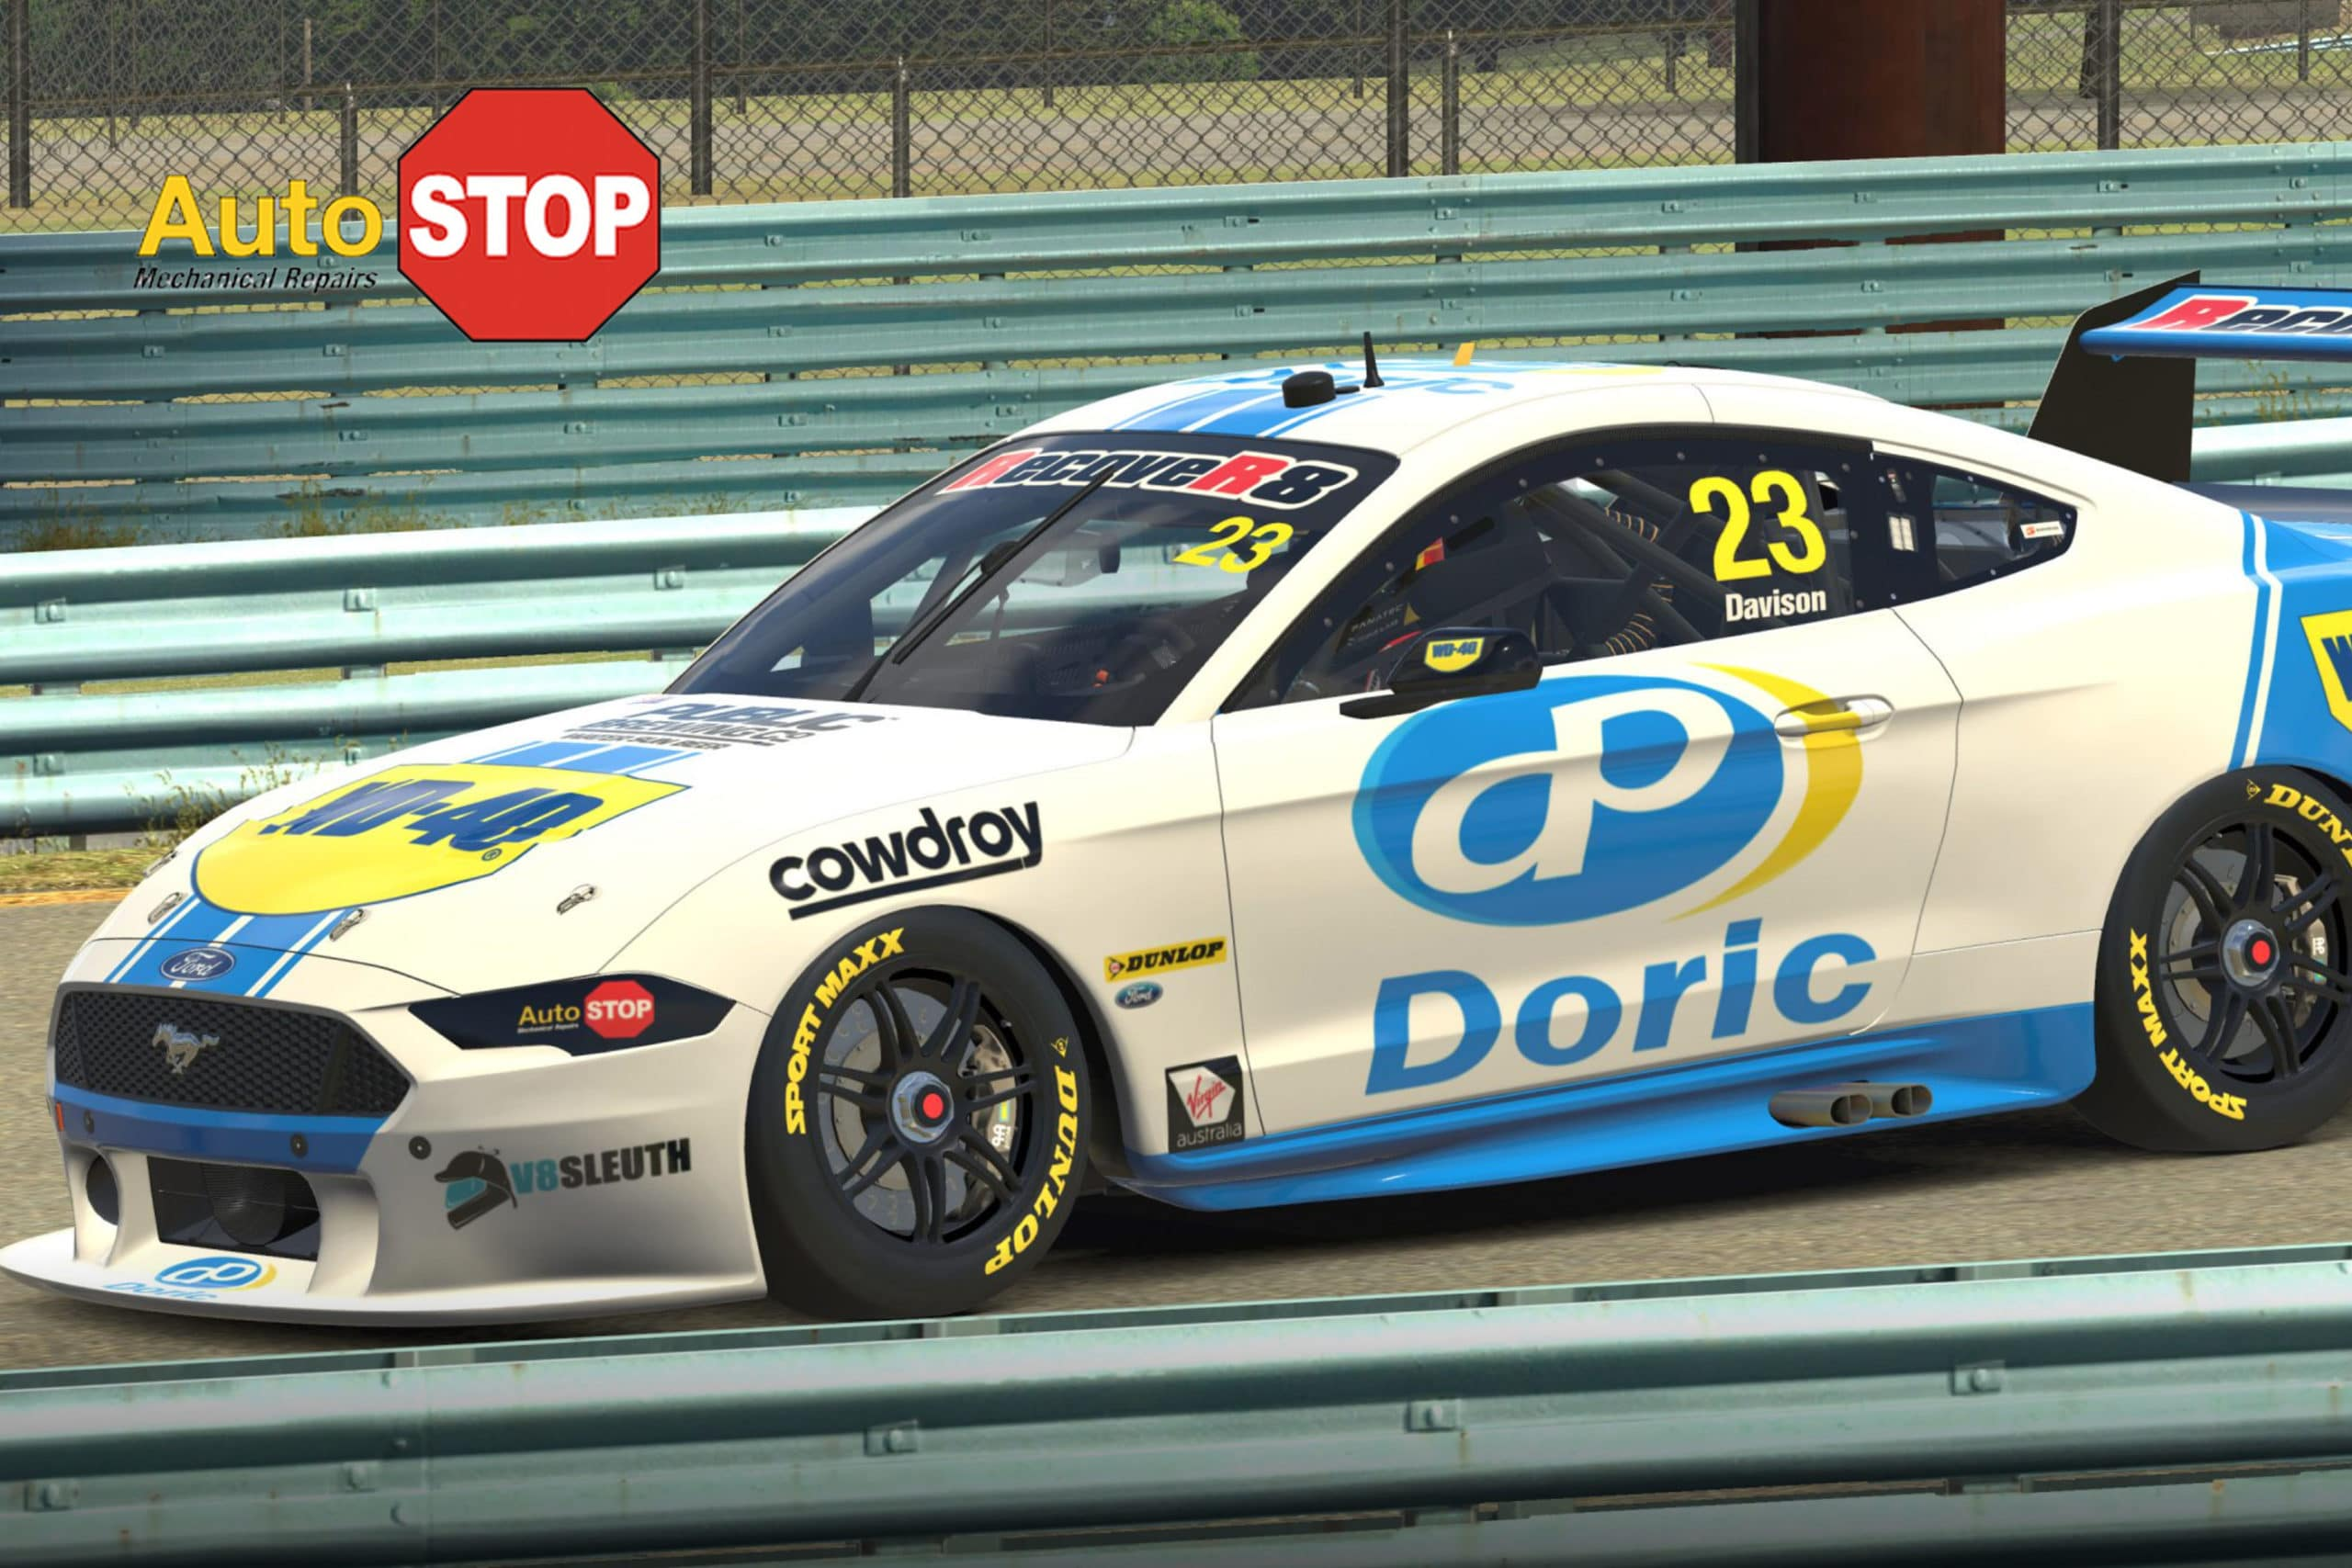 Will Davison eSeries Doric Ford Mustang Sponsored by Auto Stop